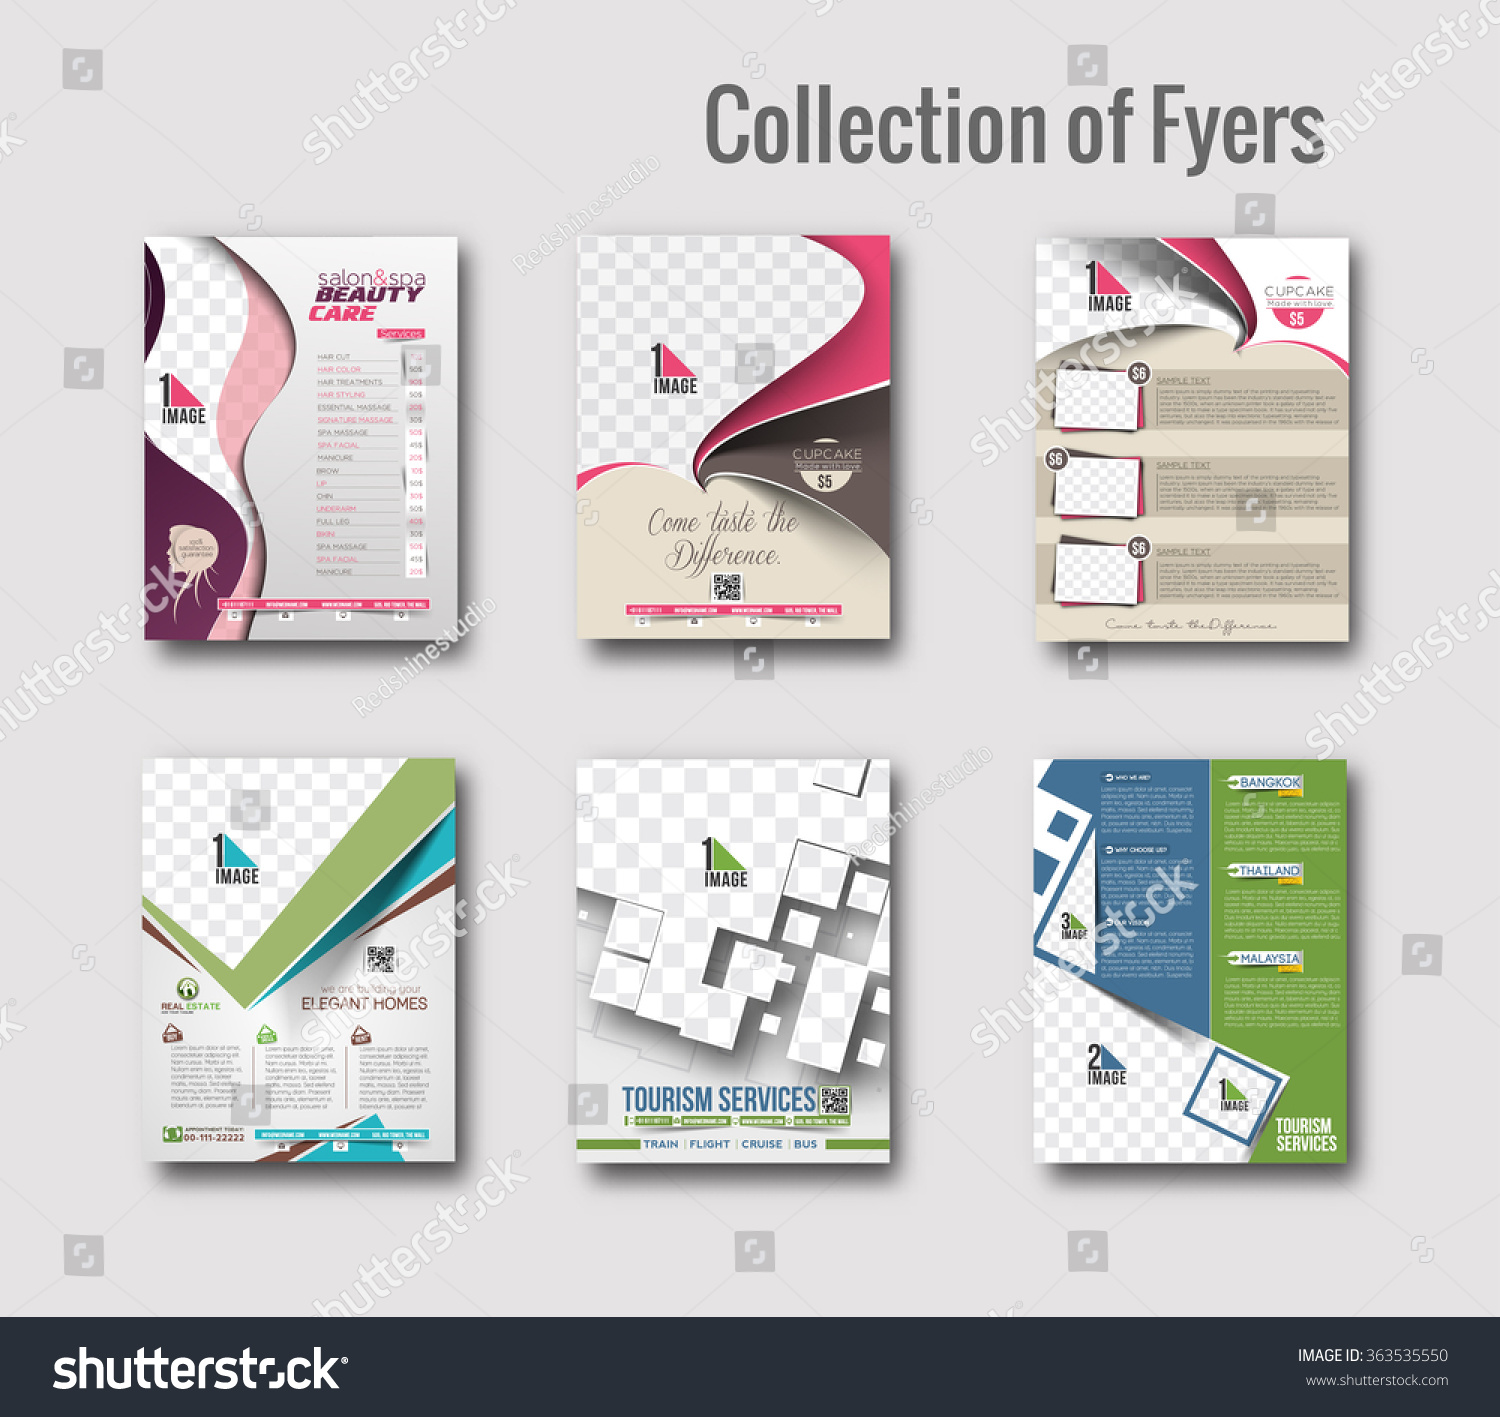 Illustrator Poster Template Free - dinosauriens.info